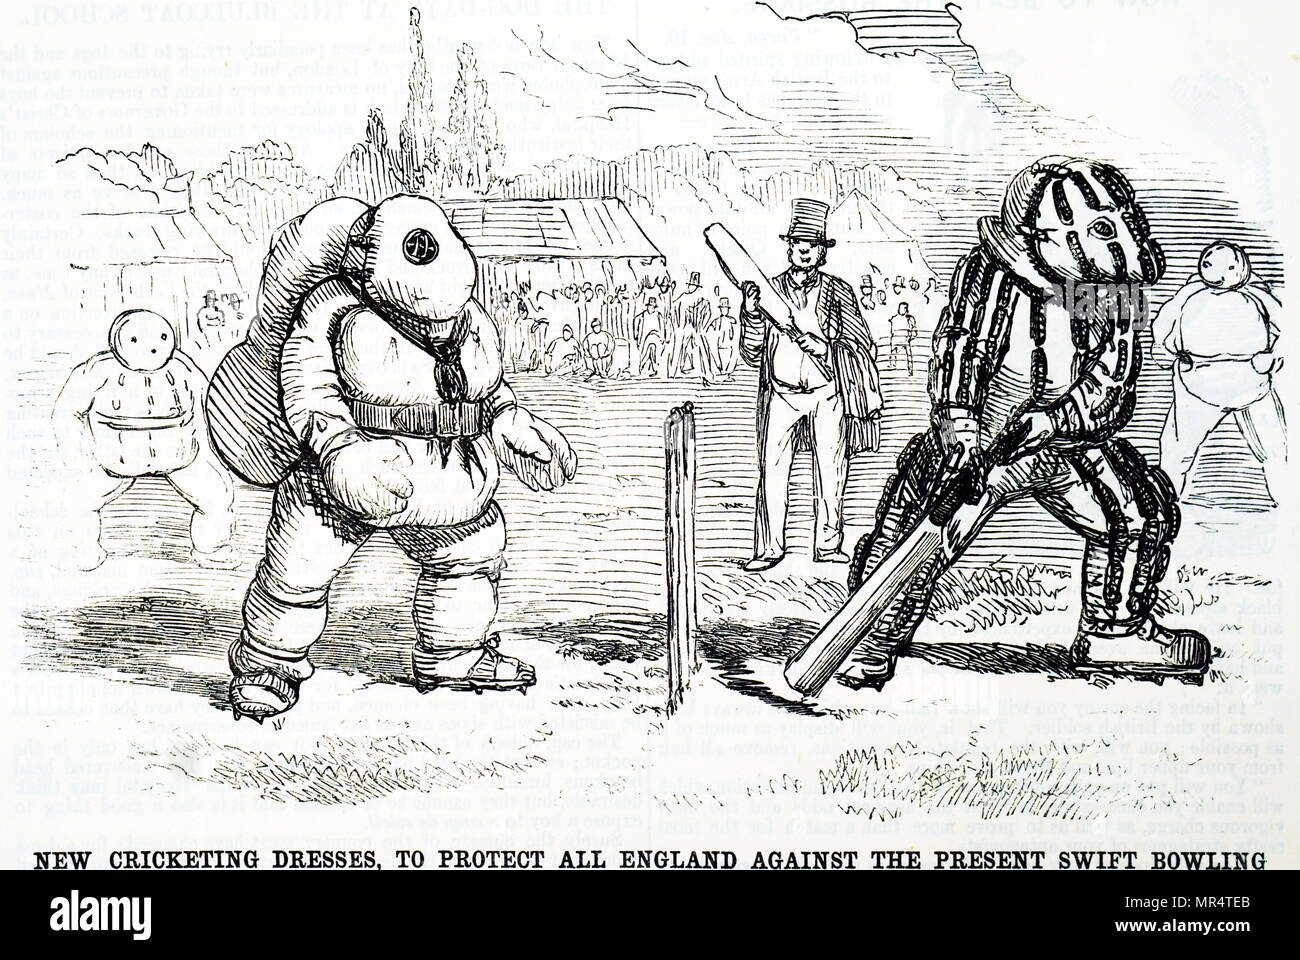 Cartoon depicting suggested protective clothing to help the All England cricket team against the latest fast bowling. Dated 19th century - Stock Image